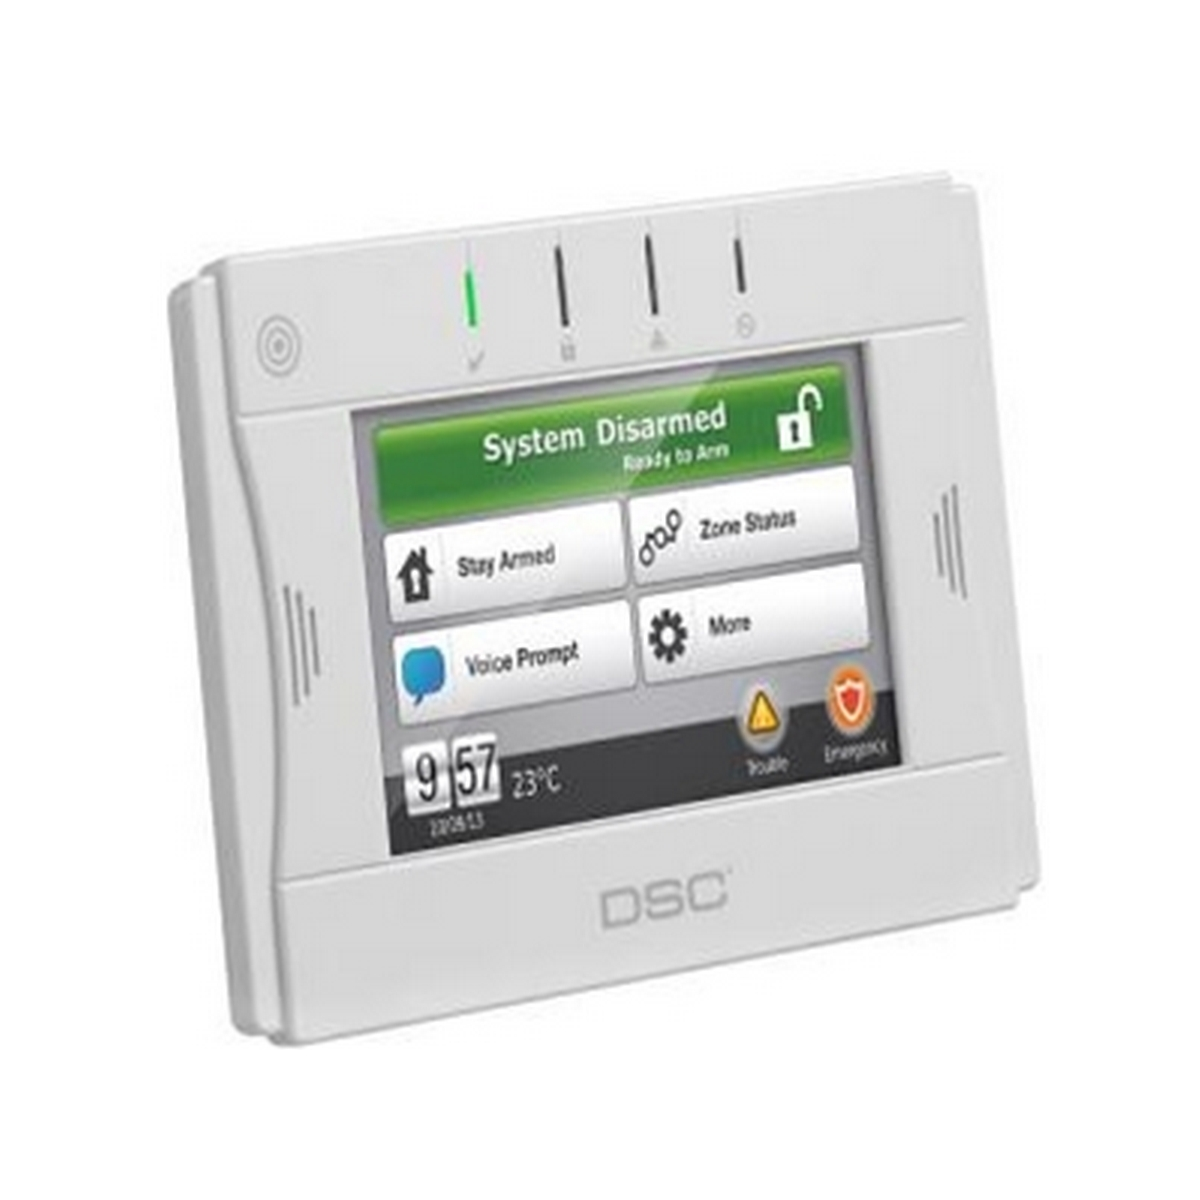 DSC WTK5504  Wireless touchscreen w/ rechargeable battery, wall mount option & xfm